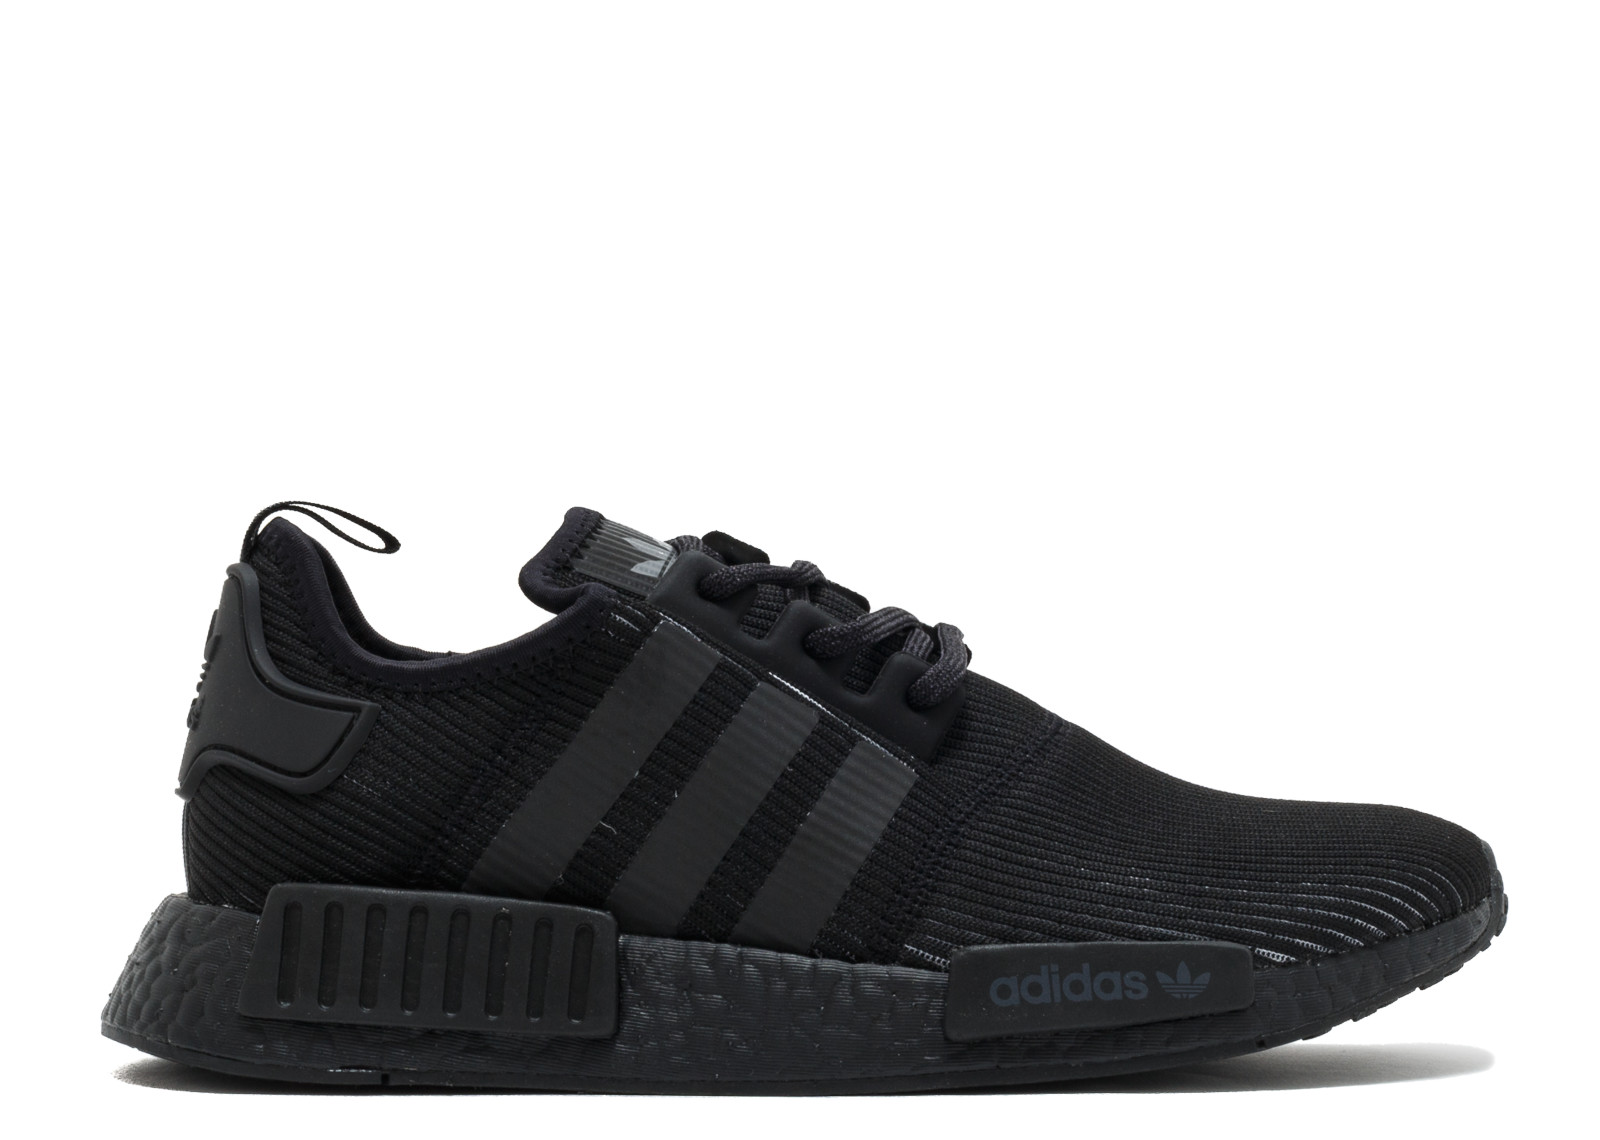 c42960144 Adidas - Men - Nmd R1  3M Triple Black  - By3123 - Size 8.5